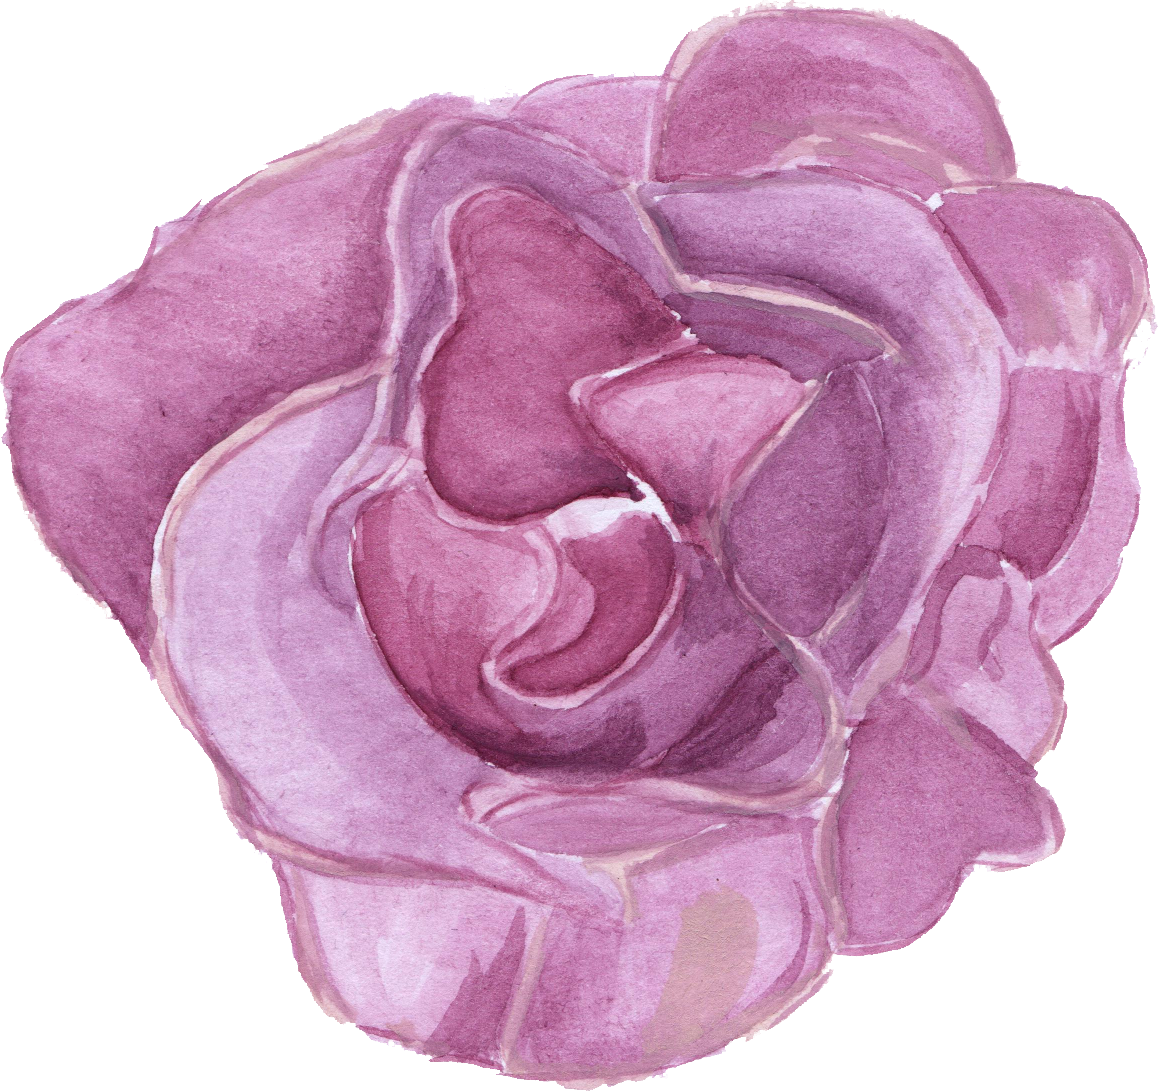 Flowers bouquet png transparent. Beautiful watercolor flower